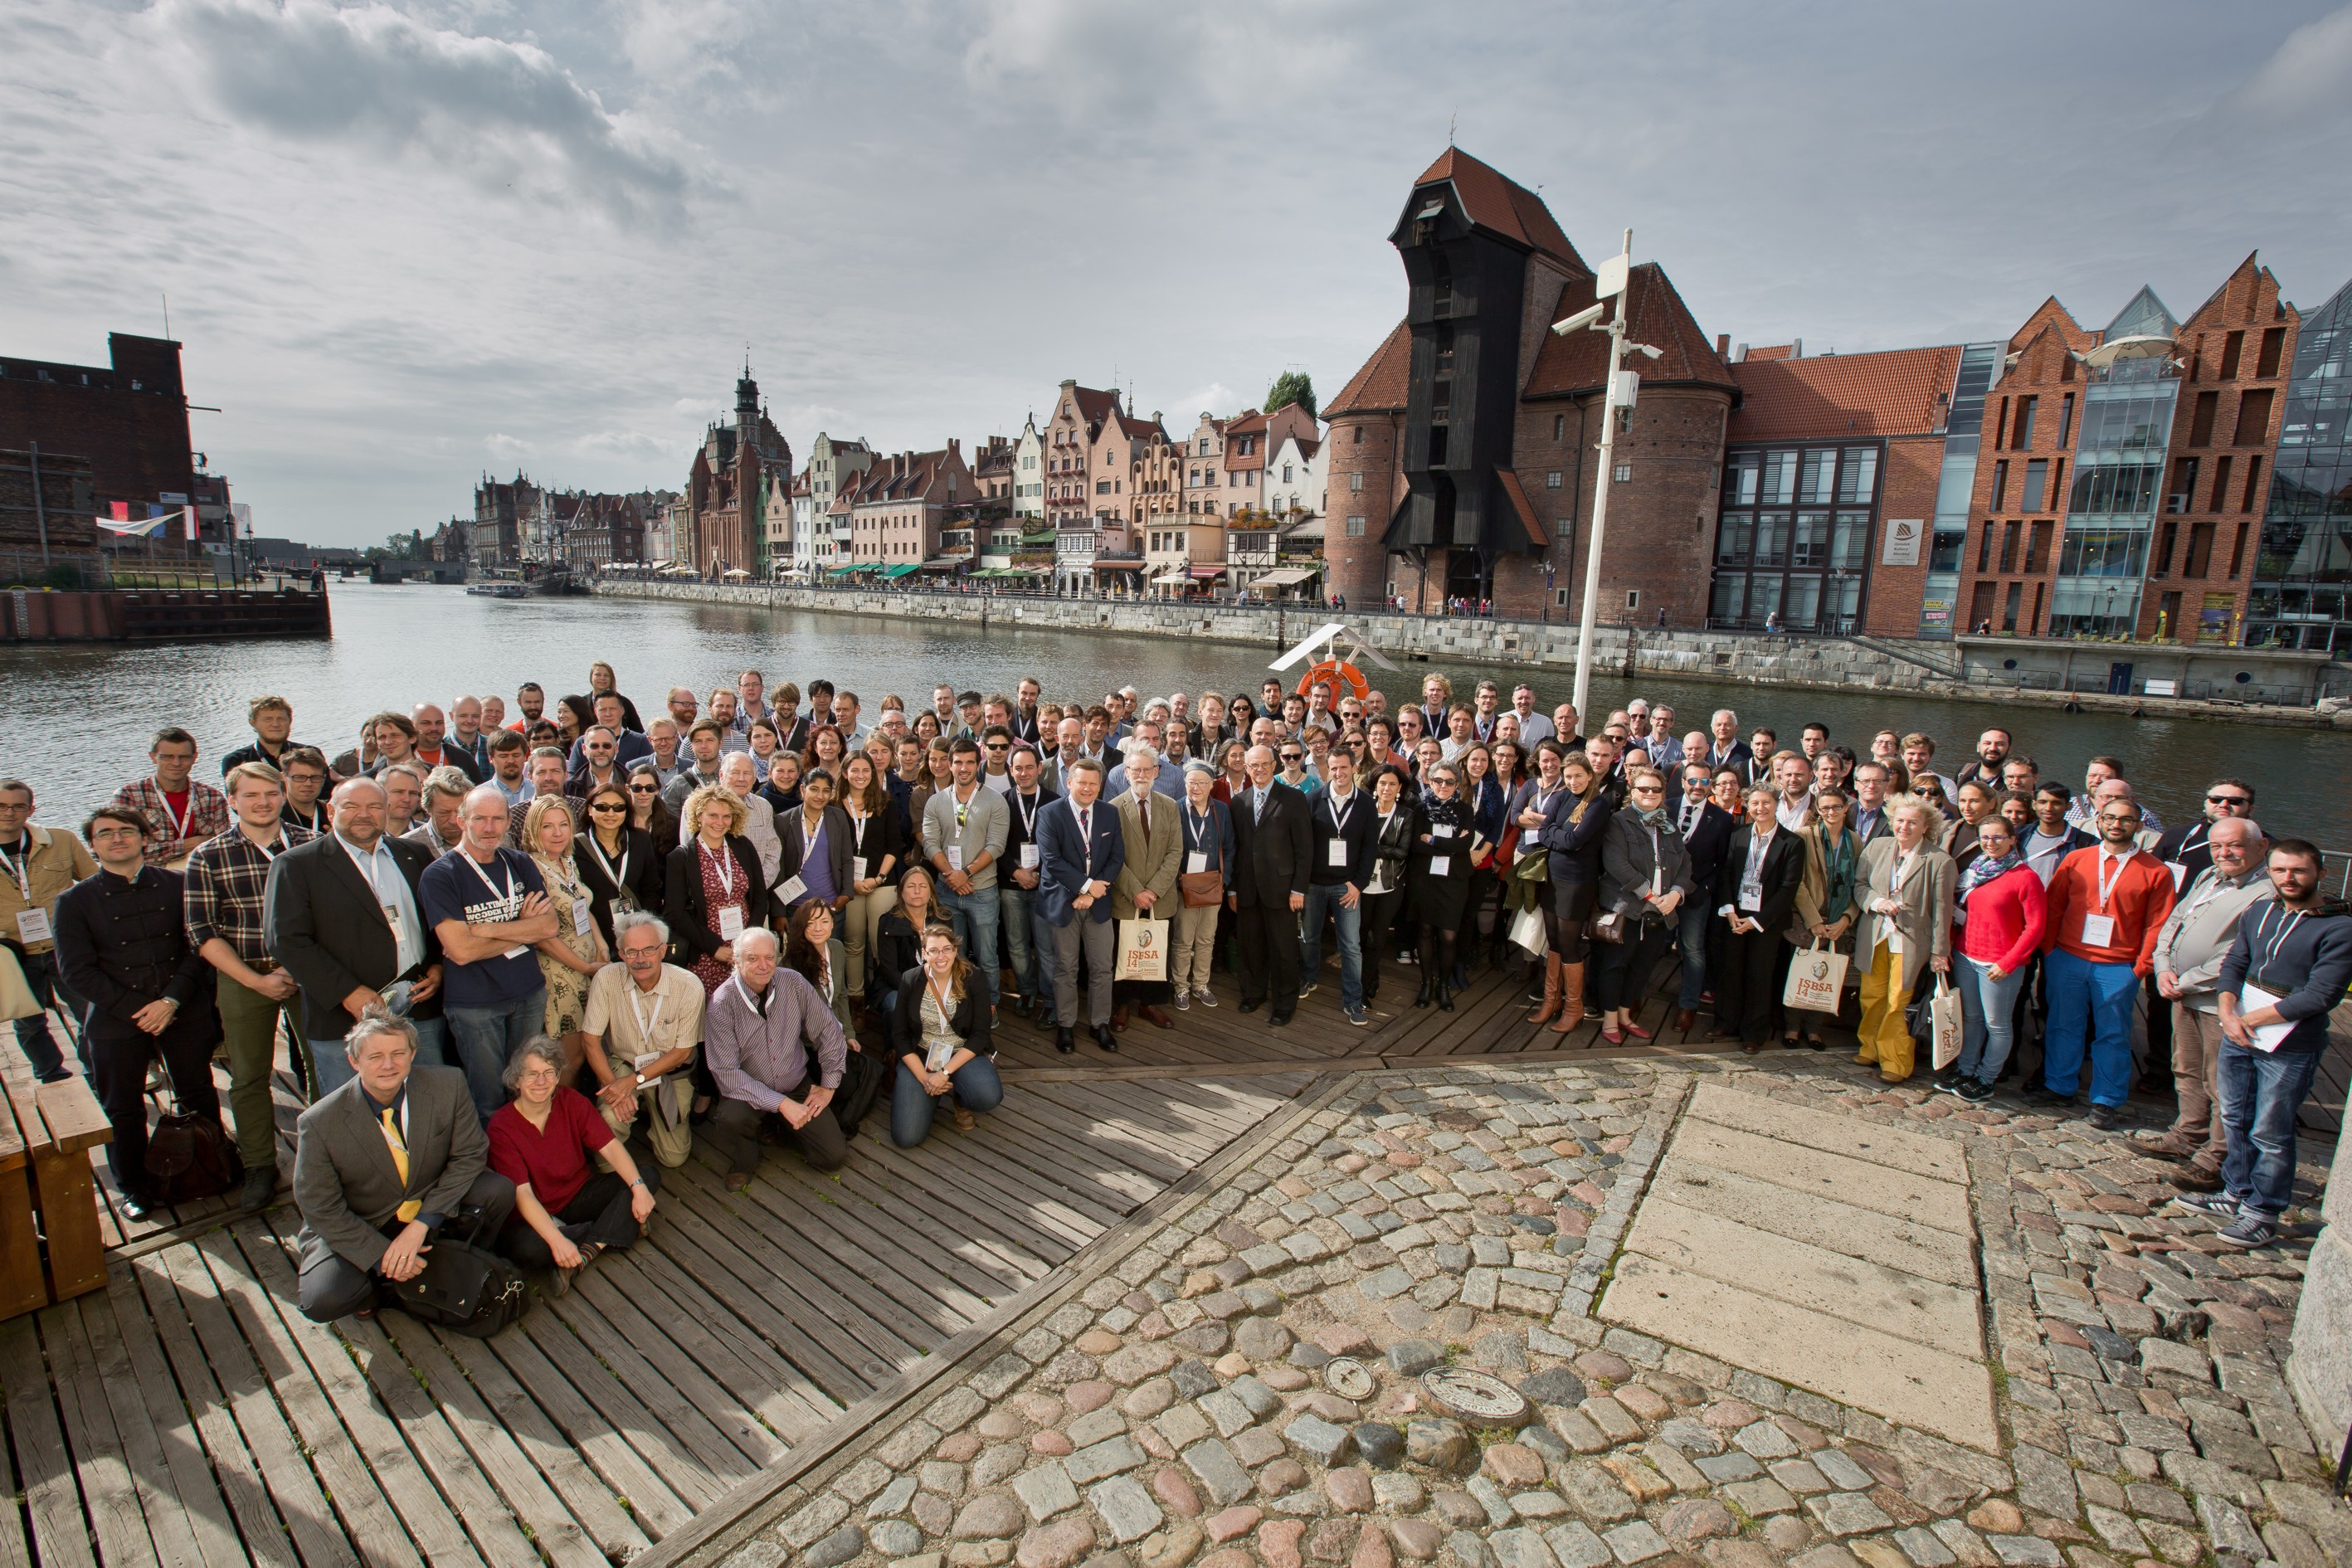 Group photo in front of the medieval crane in Gdańsk made by Paweł Jóźwiak from the National Maritime Museum